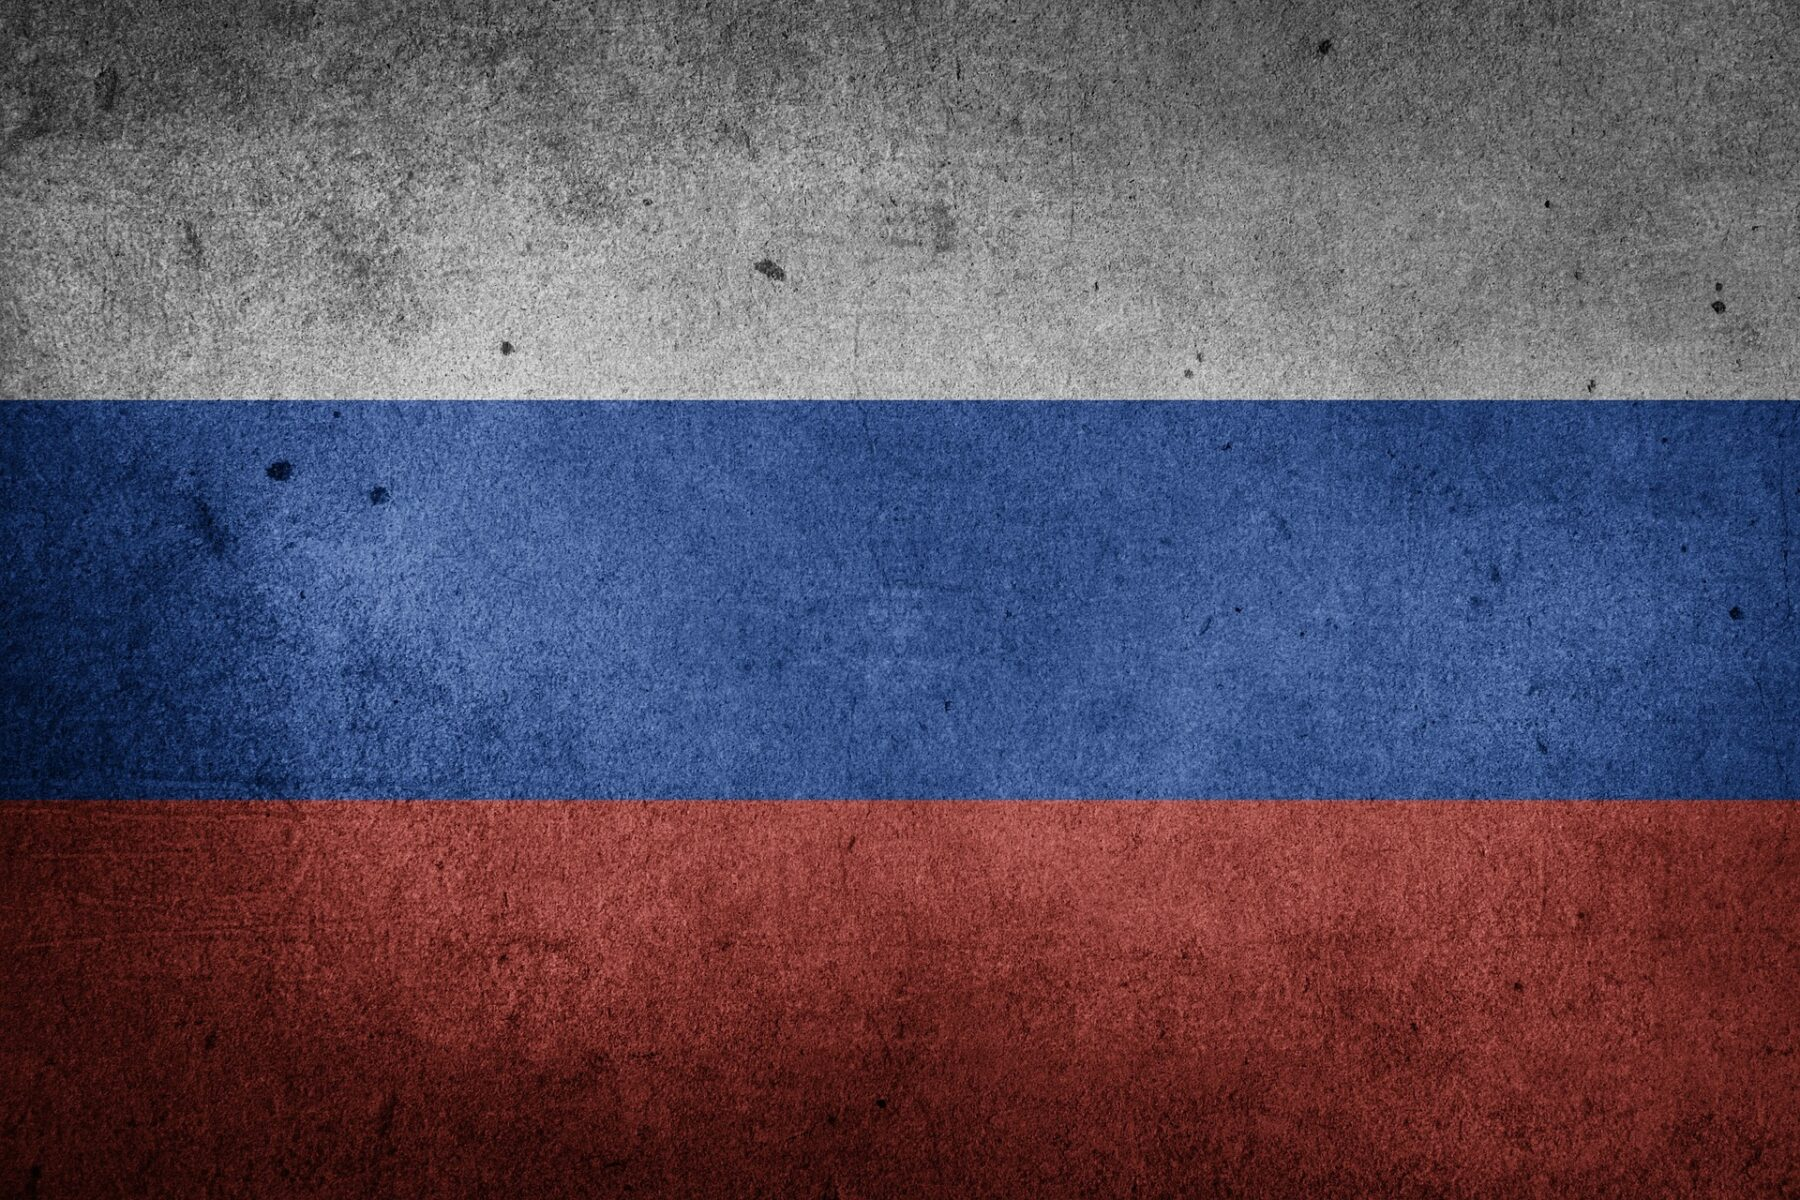 Russia aims to replace the US dollar's reserves with digital assets in the long run